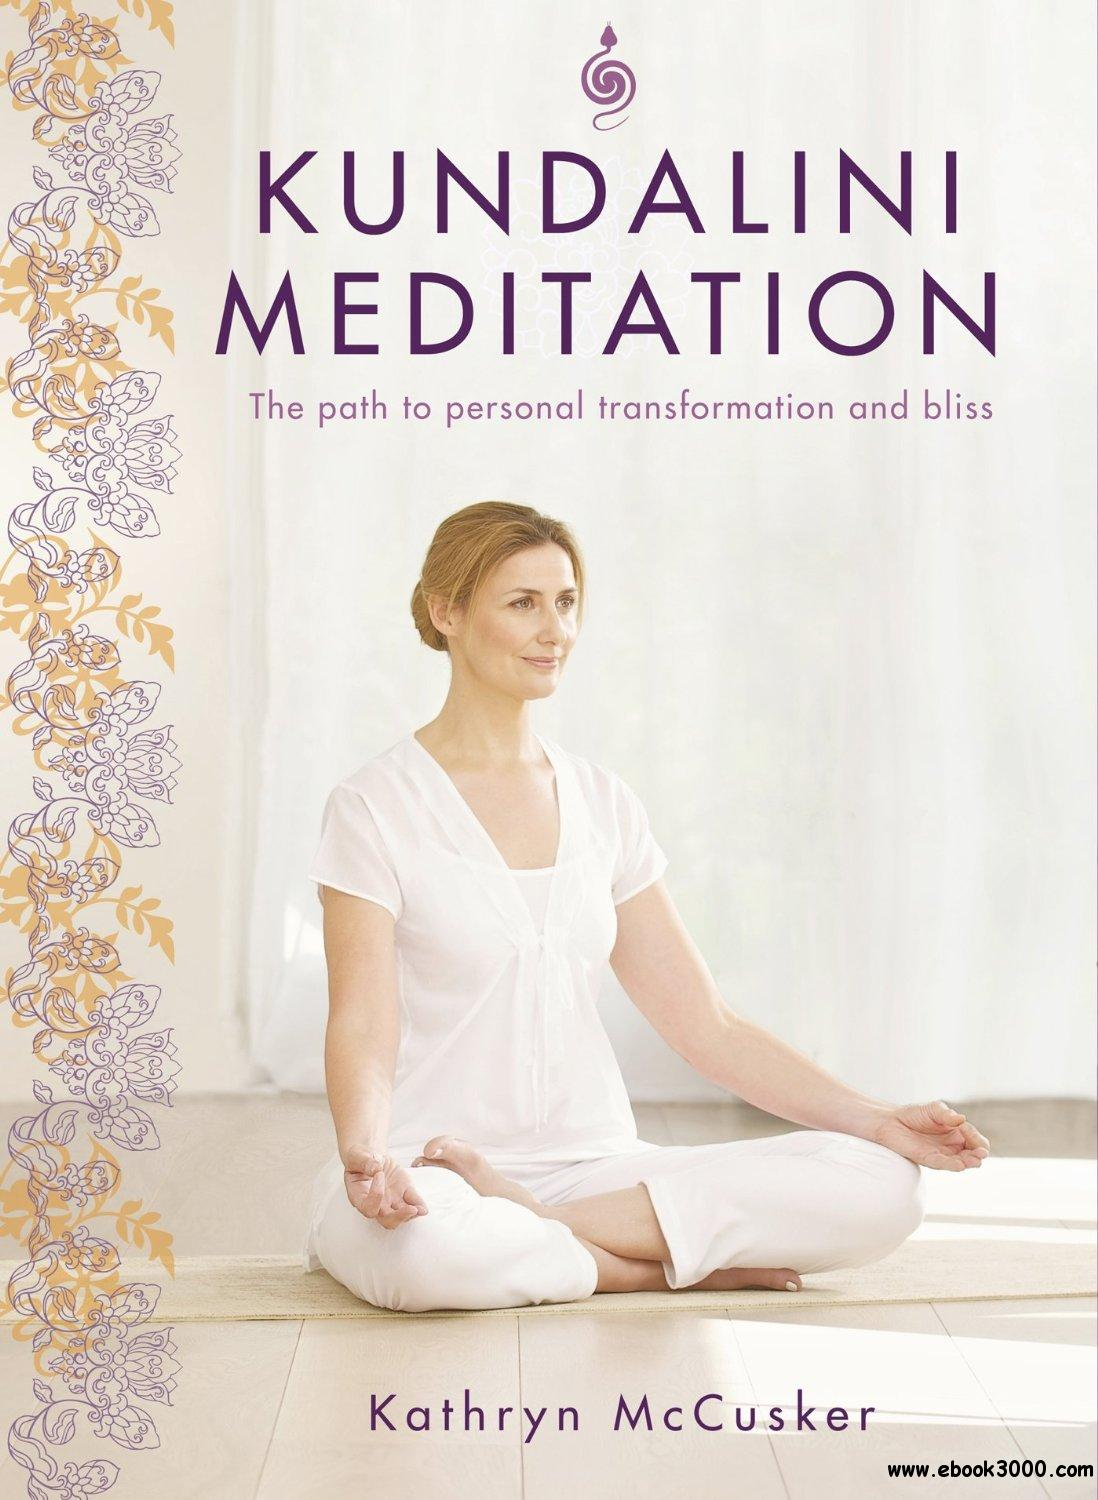 Kundalini Meditation: The Path to Personal Transformation and Creativity free download